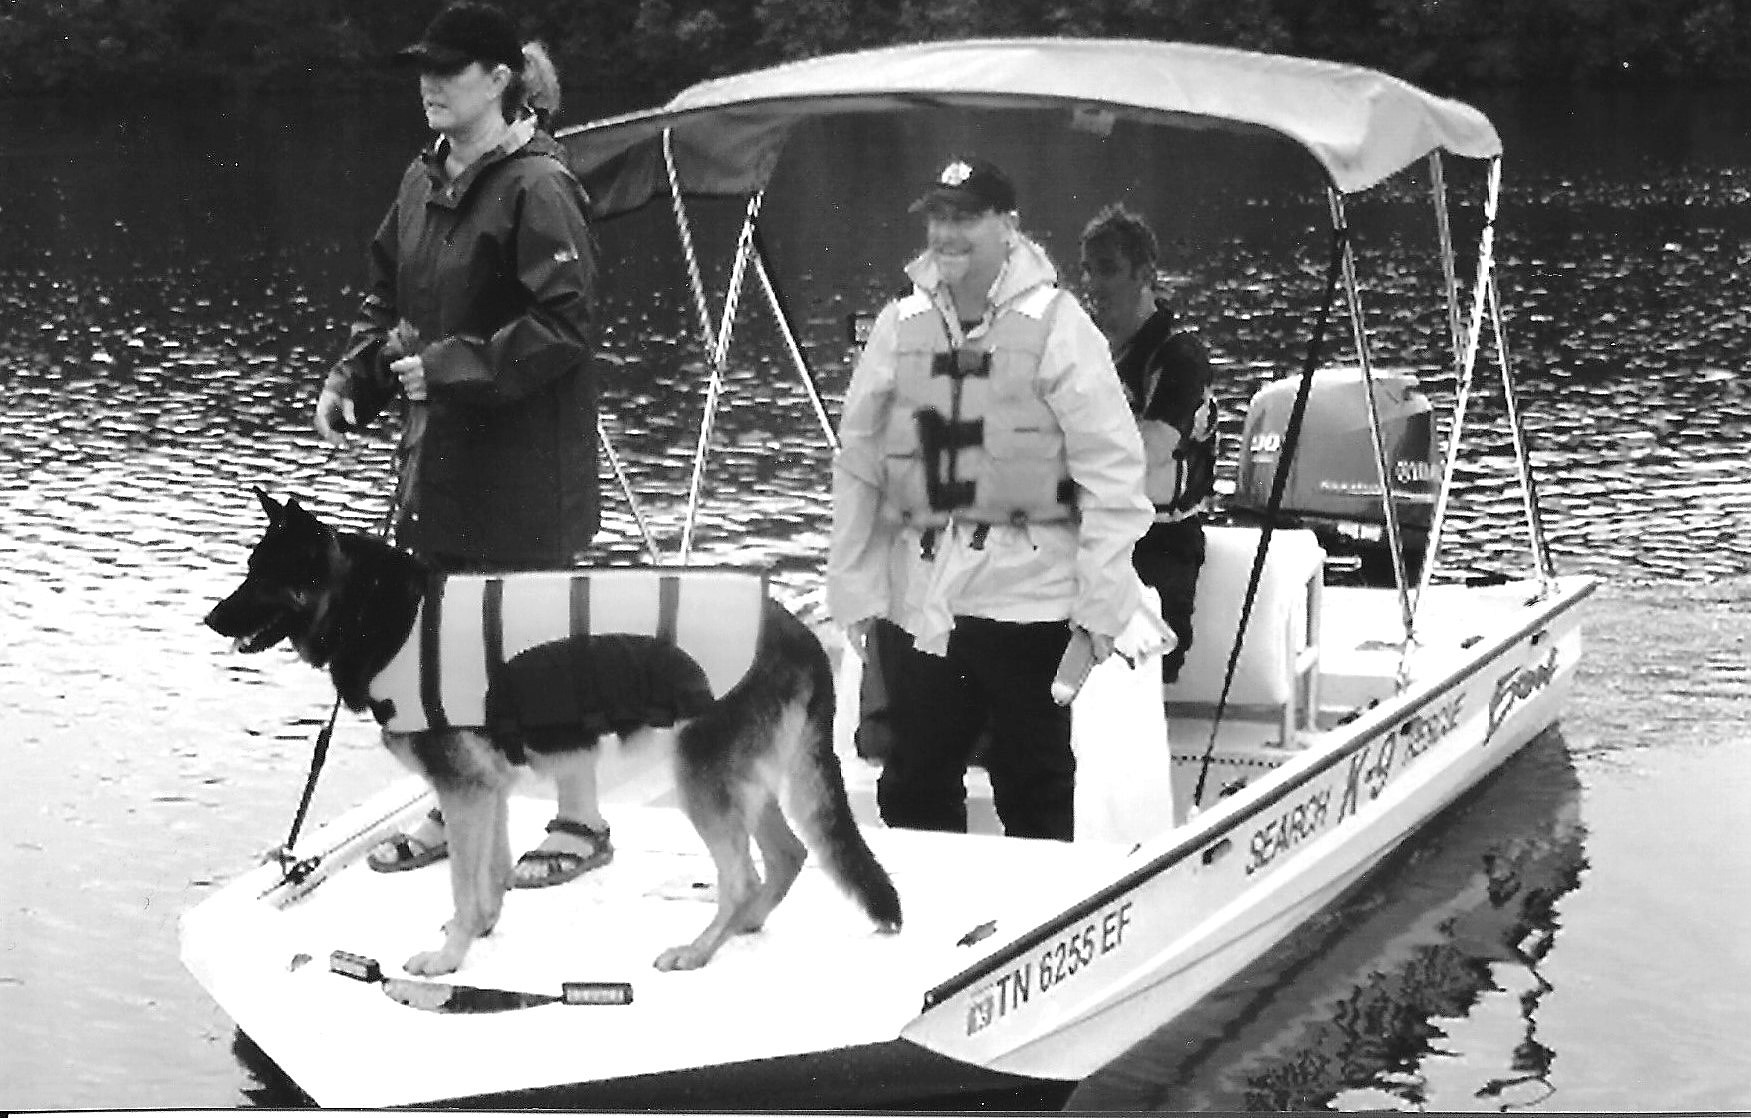 Dan Berecek, in light colored vest, with Josey, his search-and-rescue dog.